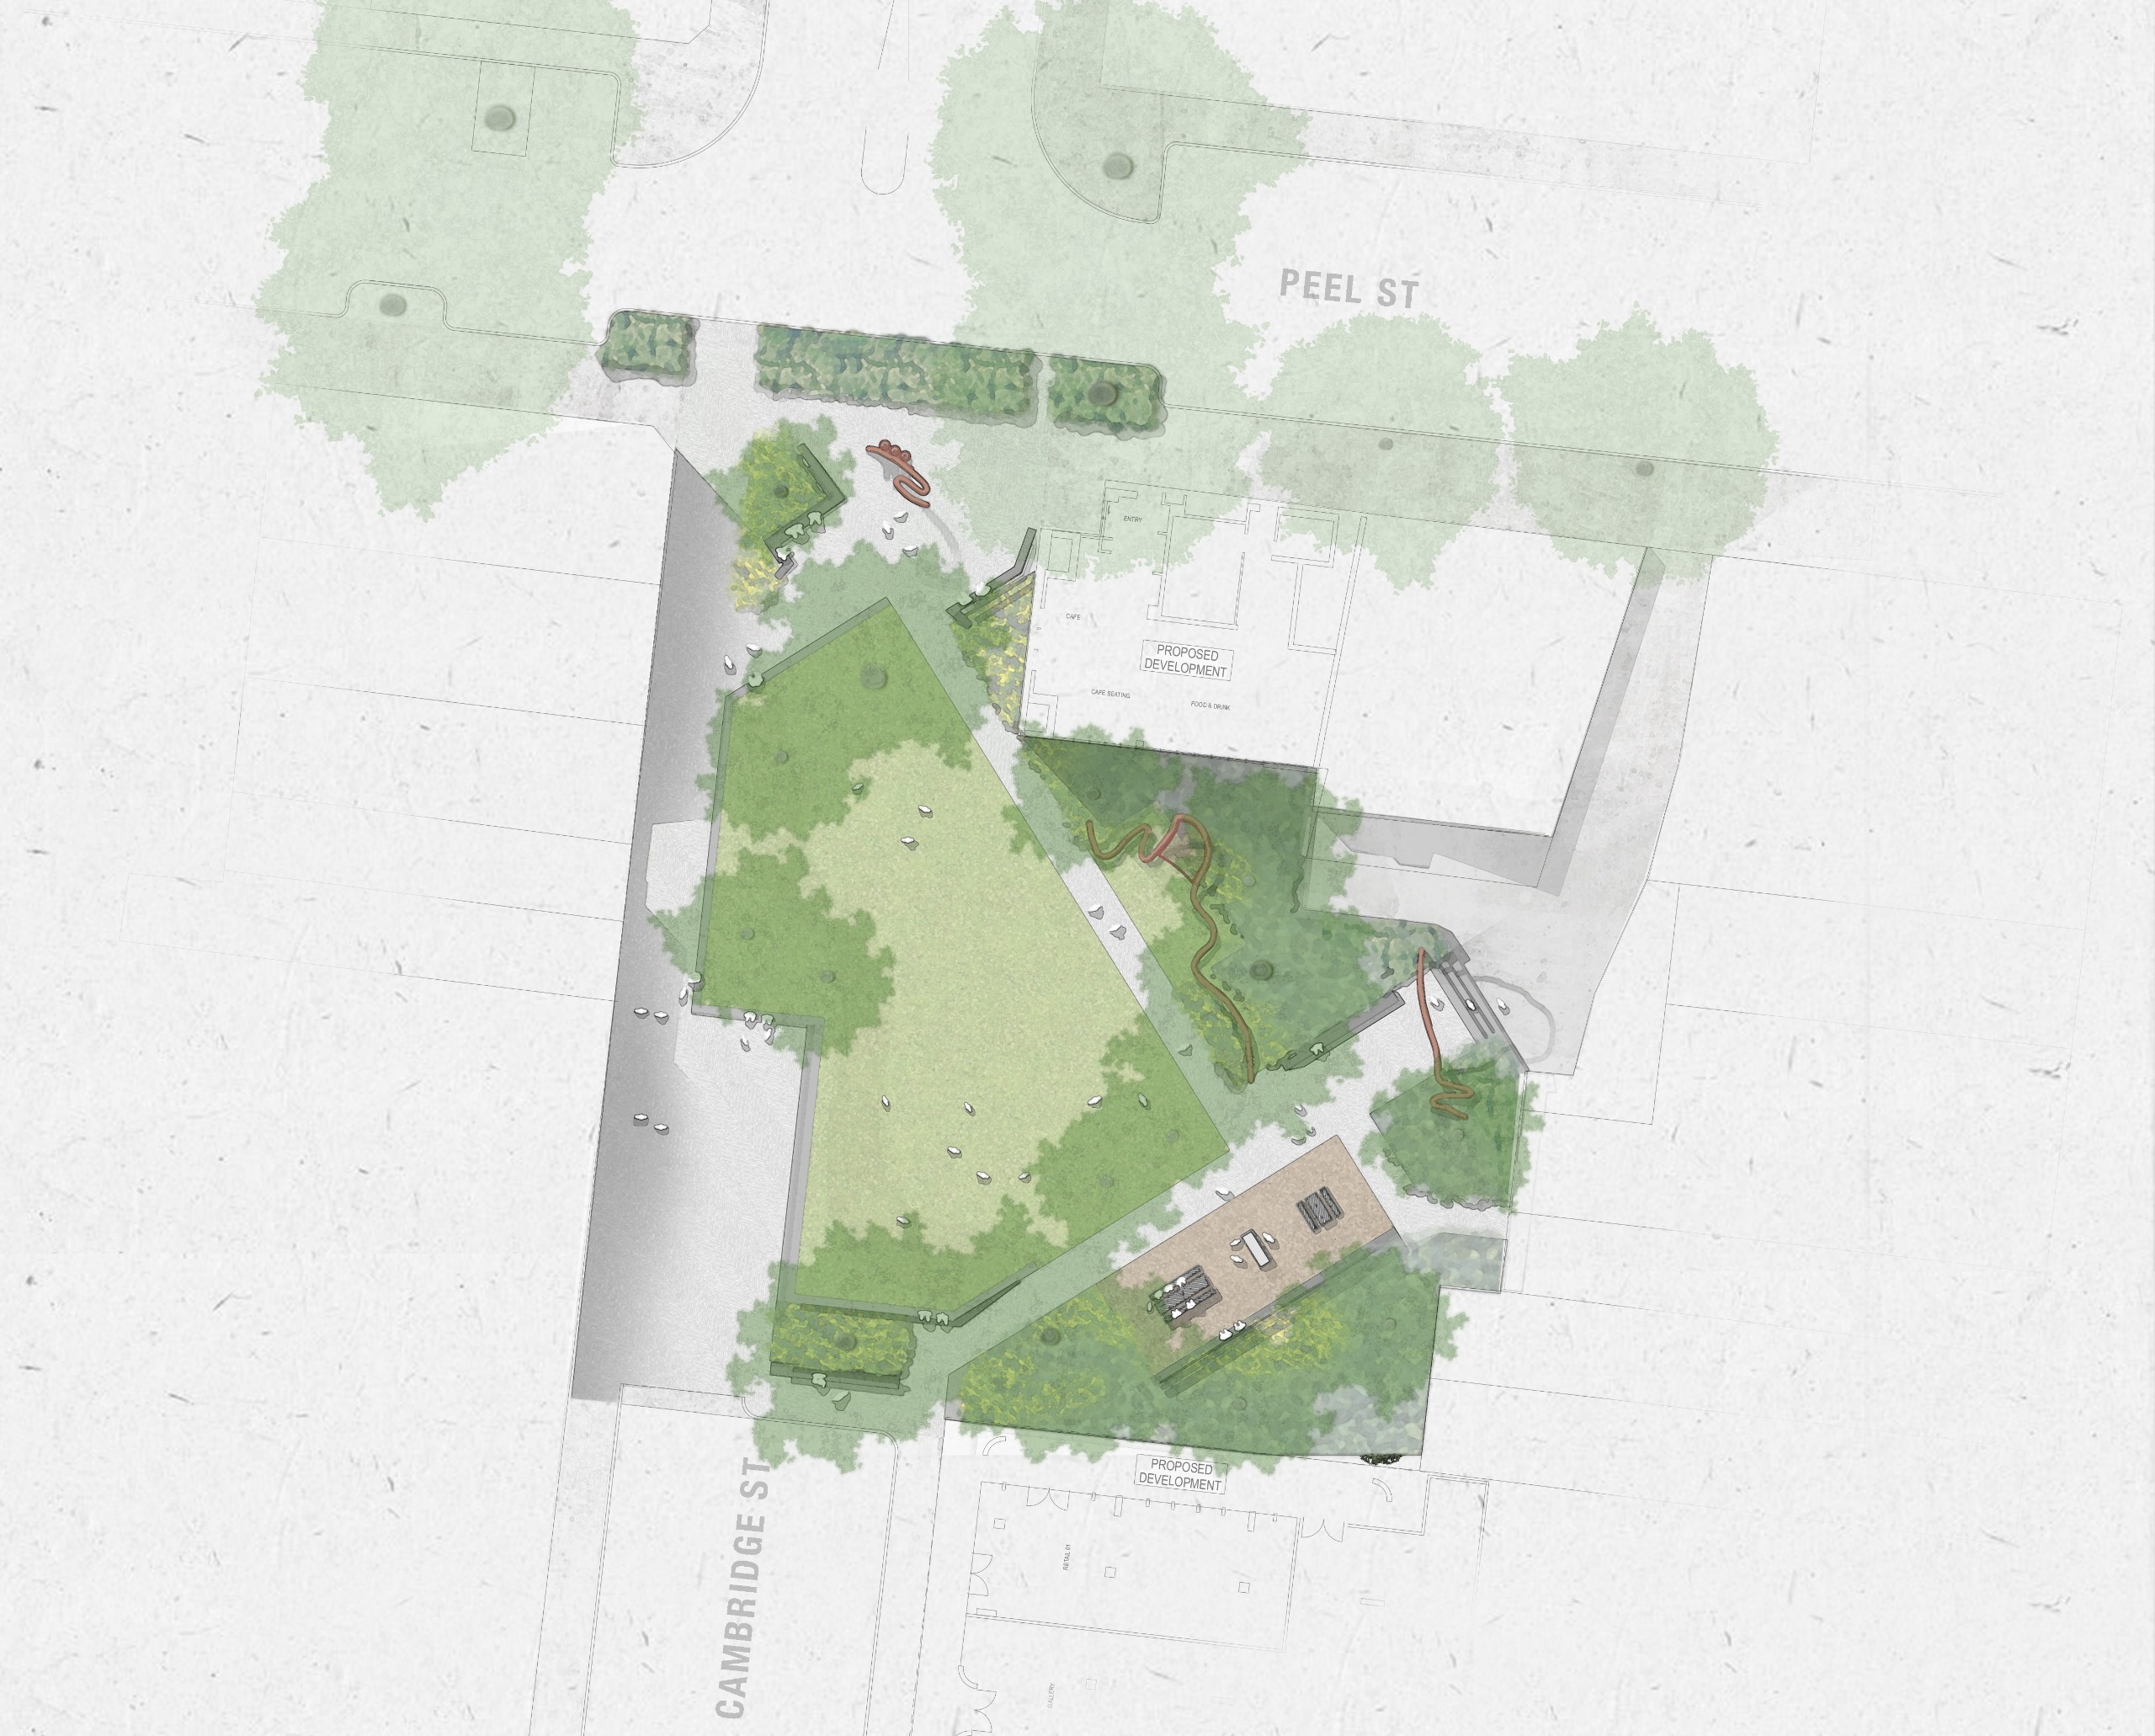 Bird's eye view of proposed design for Cambridge Street Reserve